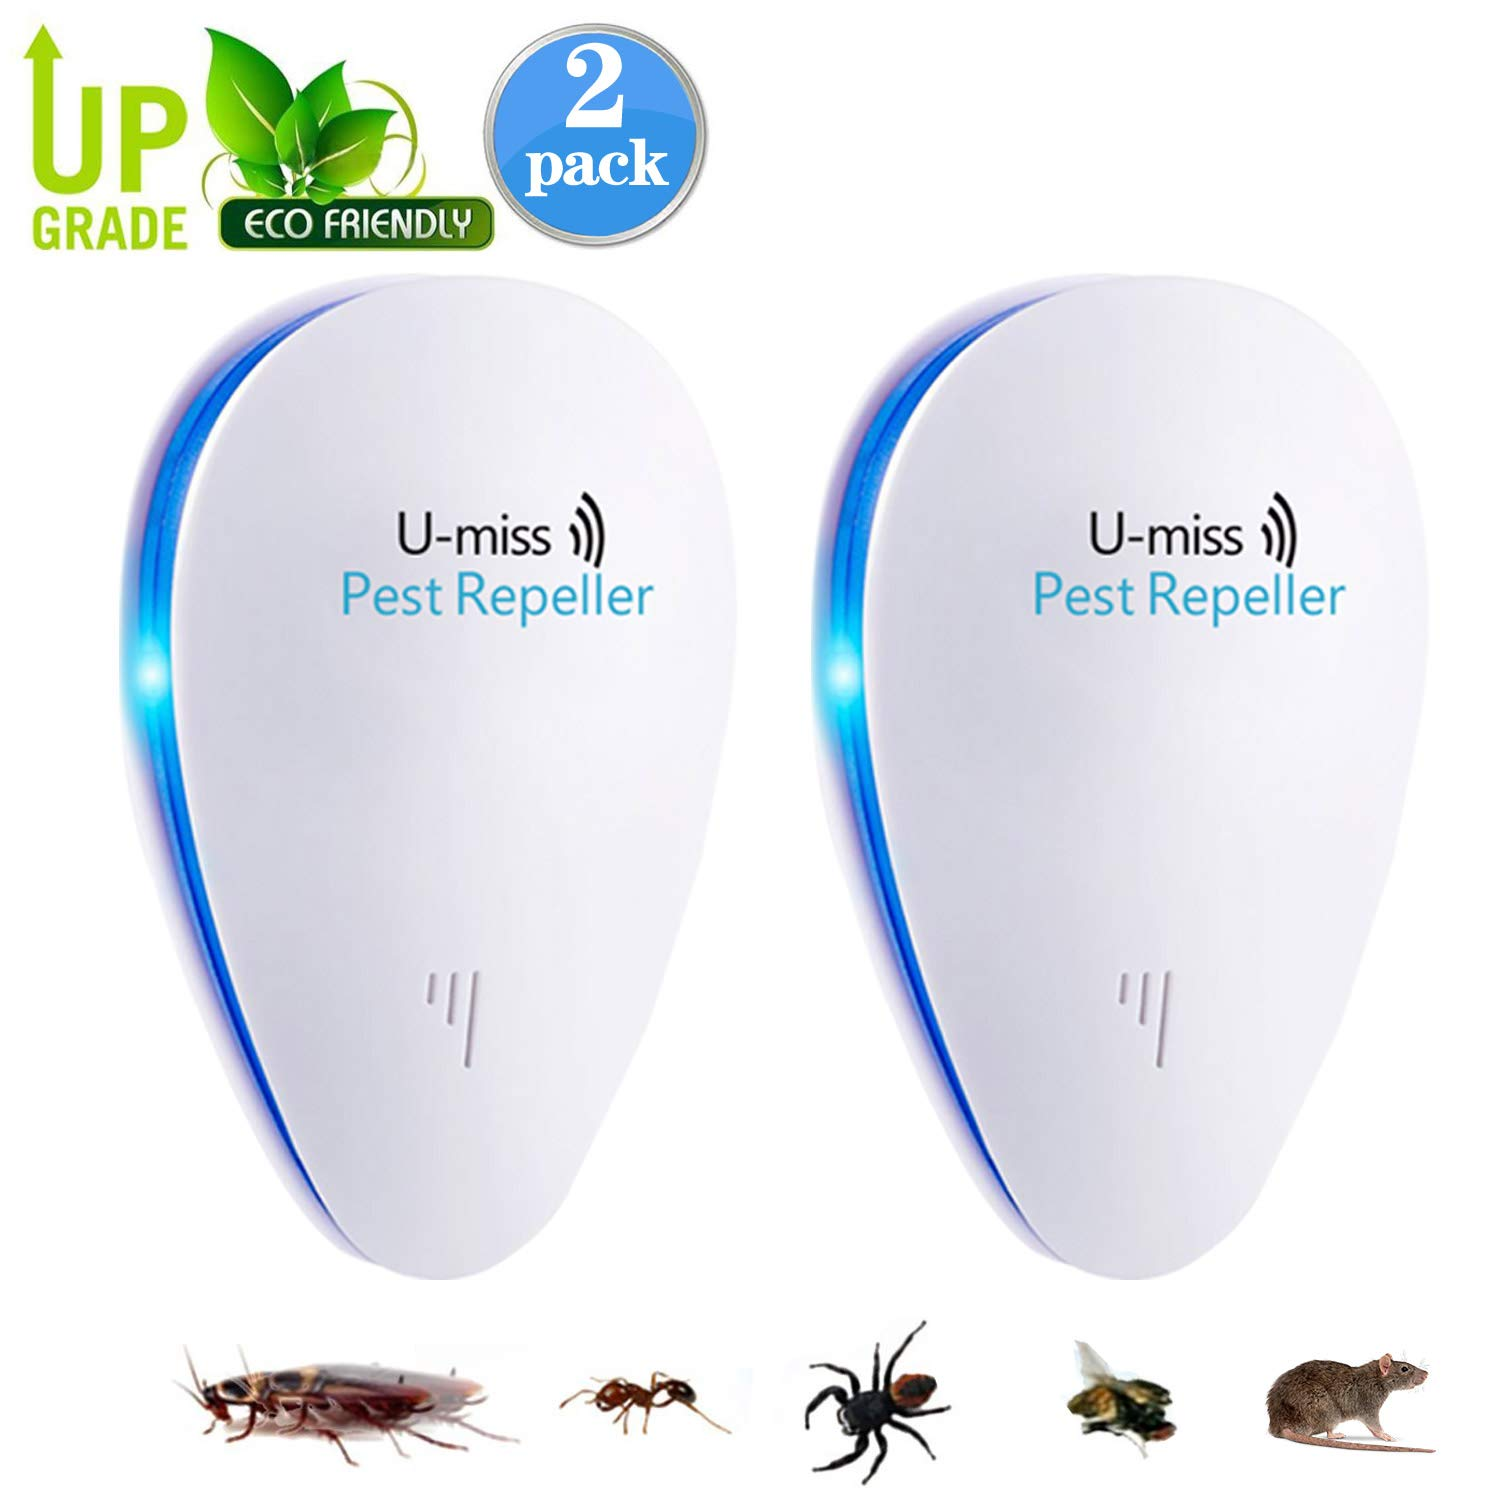 U-MISS Ultrasonic Pest Mosquito Repellent Plug Control EverPest - Professional Home (2 Pack) Electronic Indoor Repeller - Repels Away Fleas, Bugs, Rodents, Roaches, Mice, Insect, Ants, Spiders, Rats